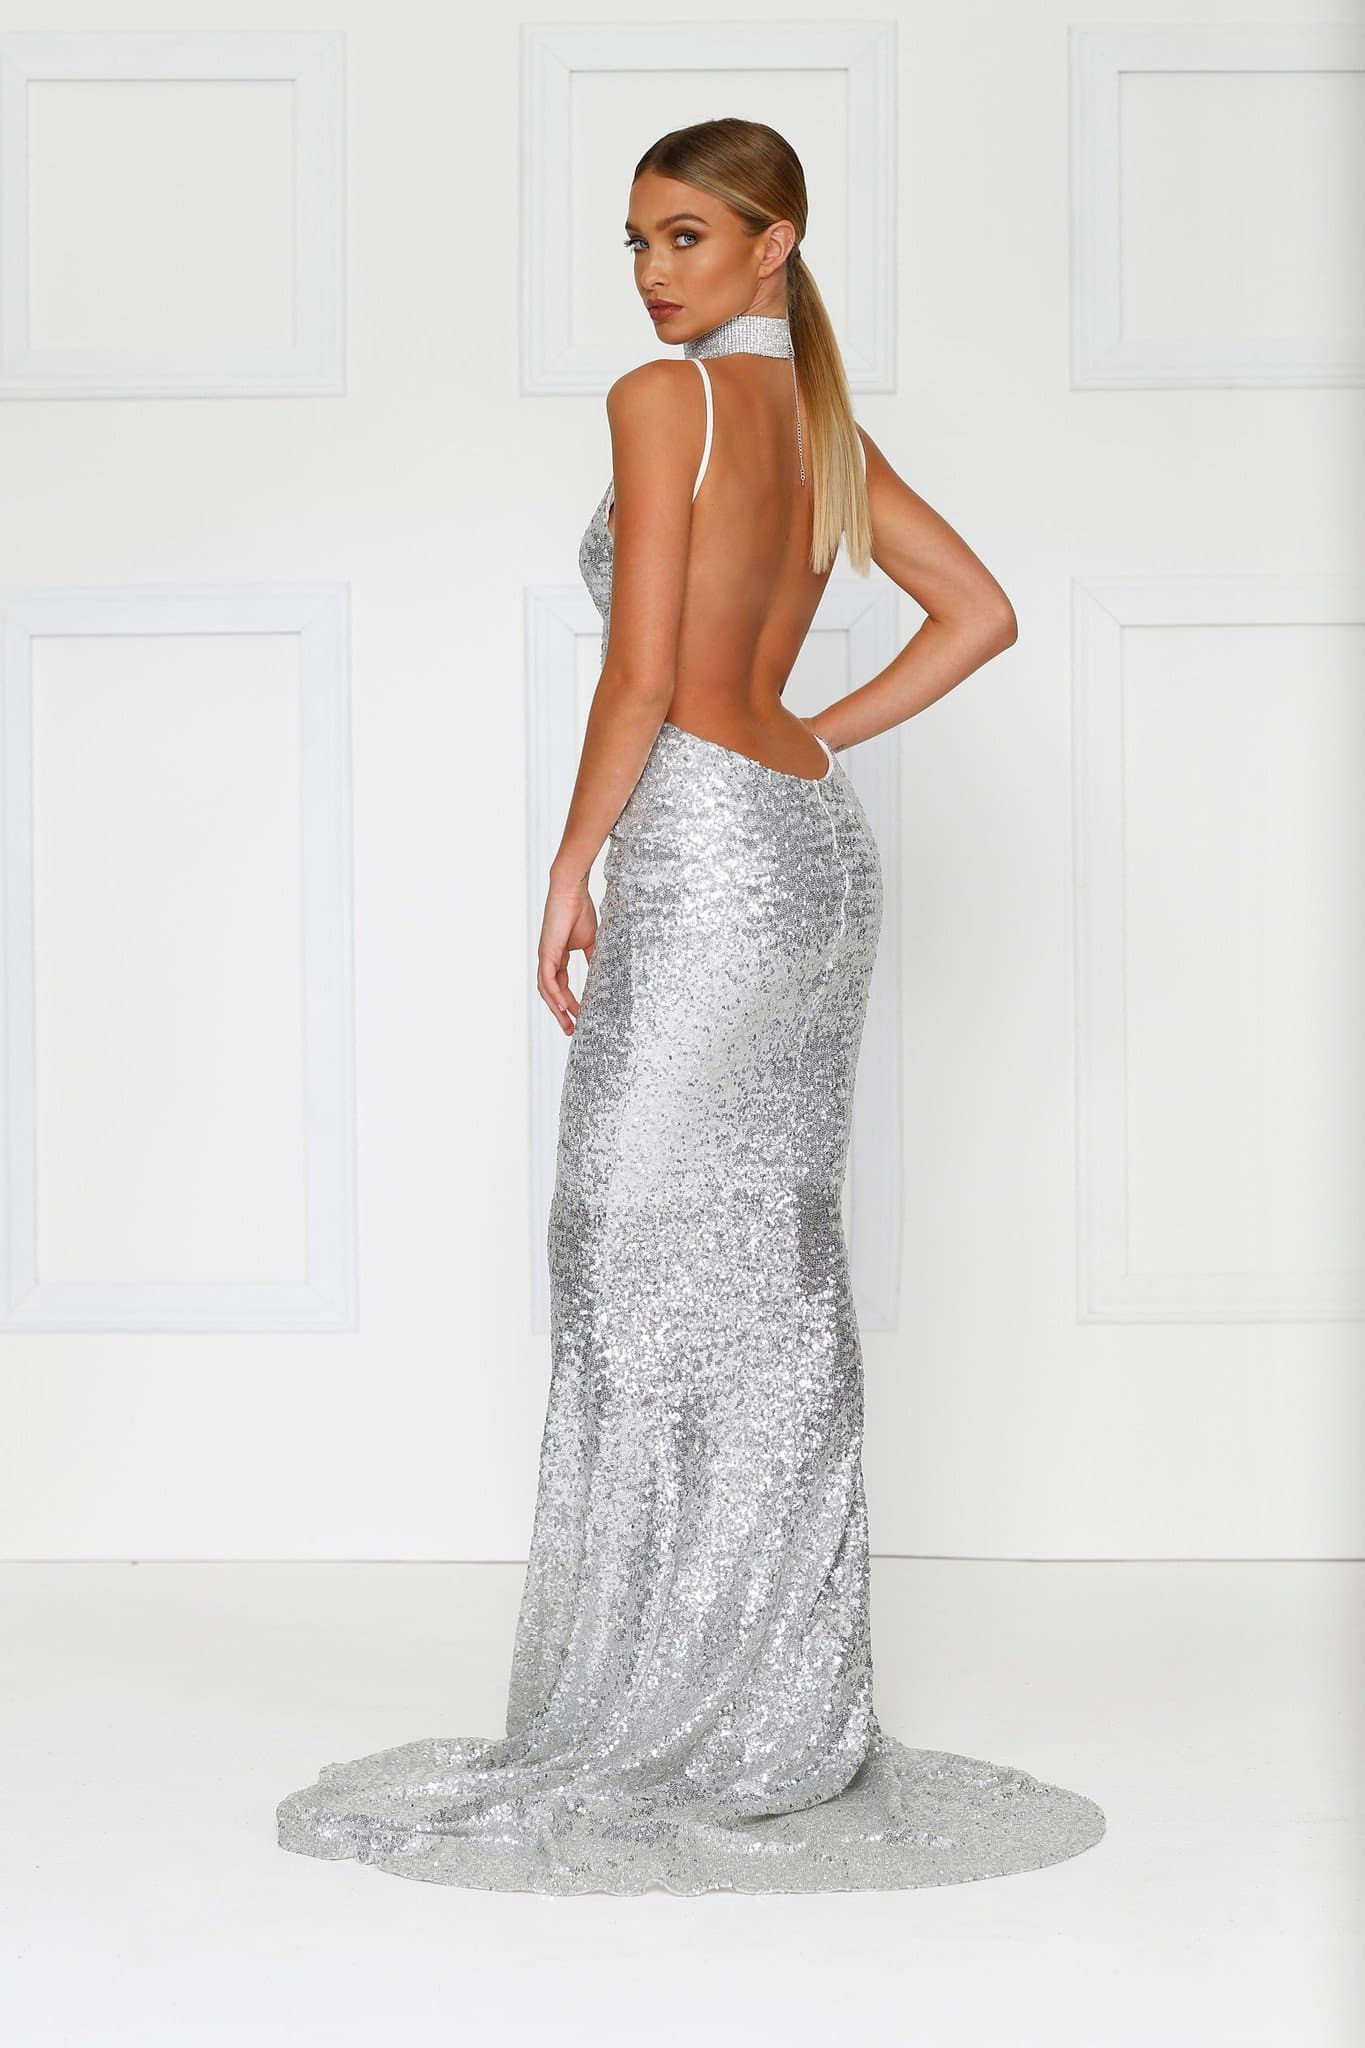 Yassmine Mermaid Gown - Silver V Neck Dress with Spaghetti Straps